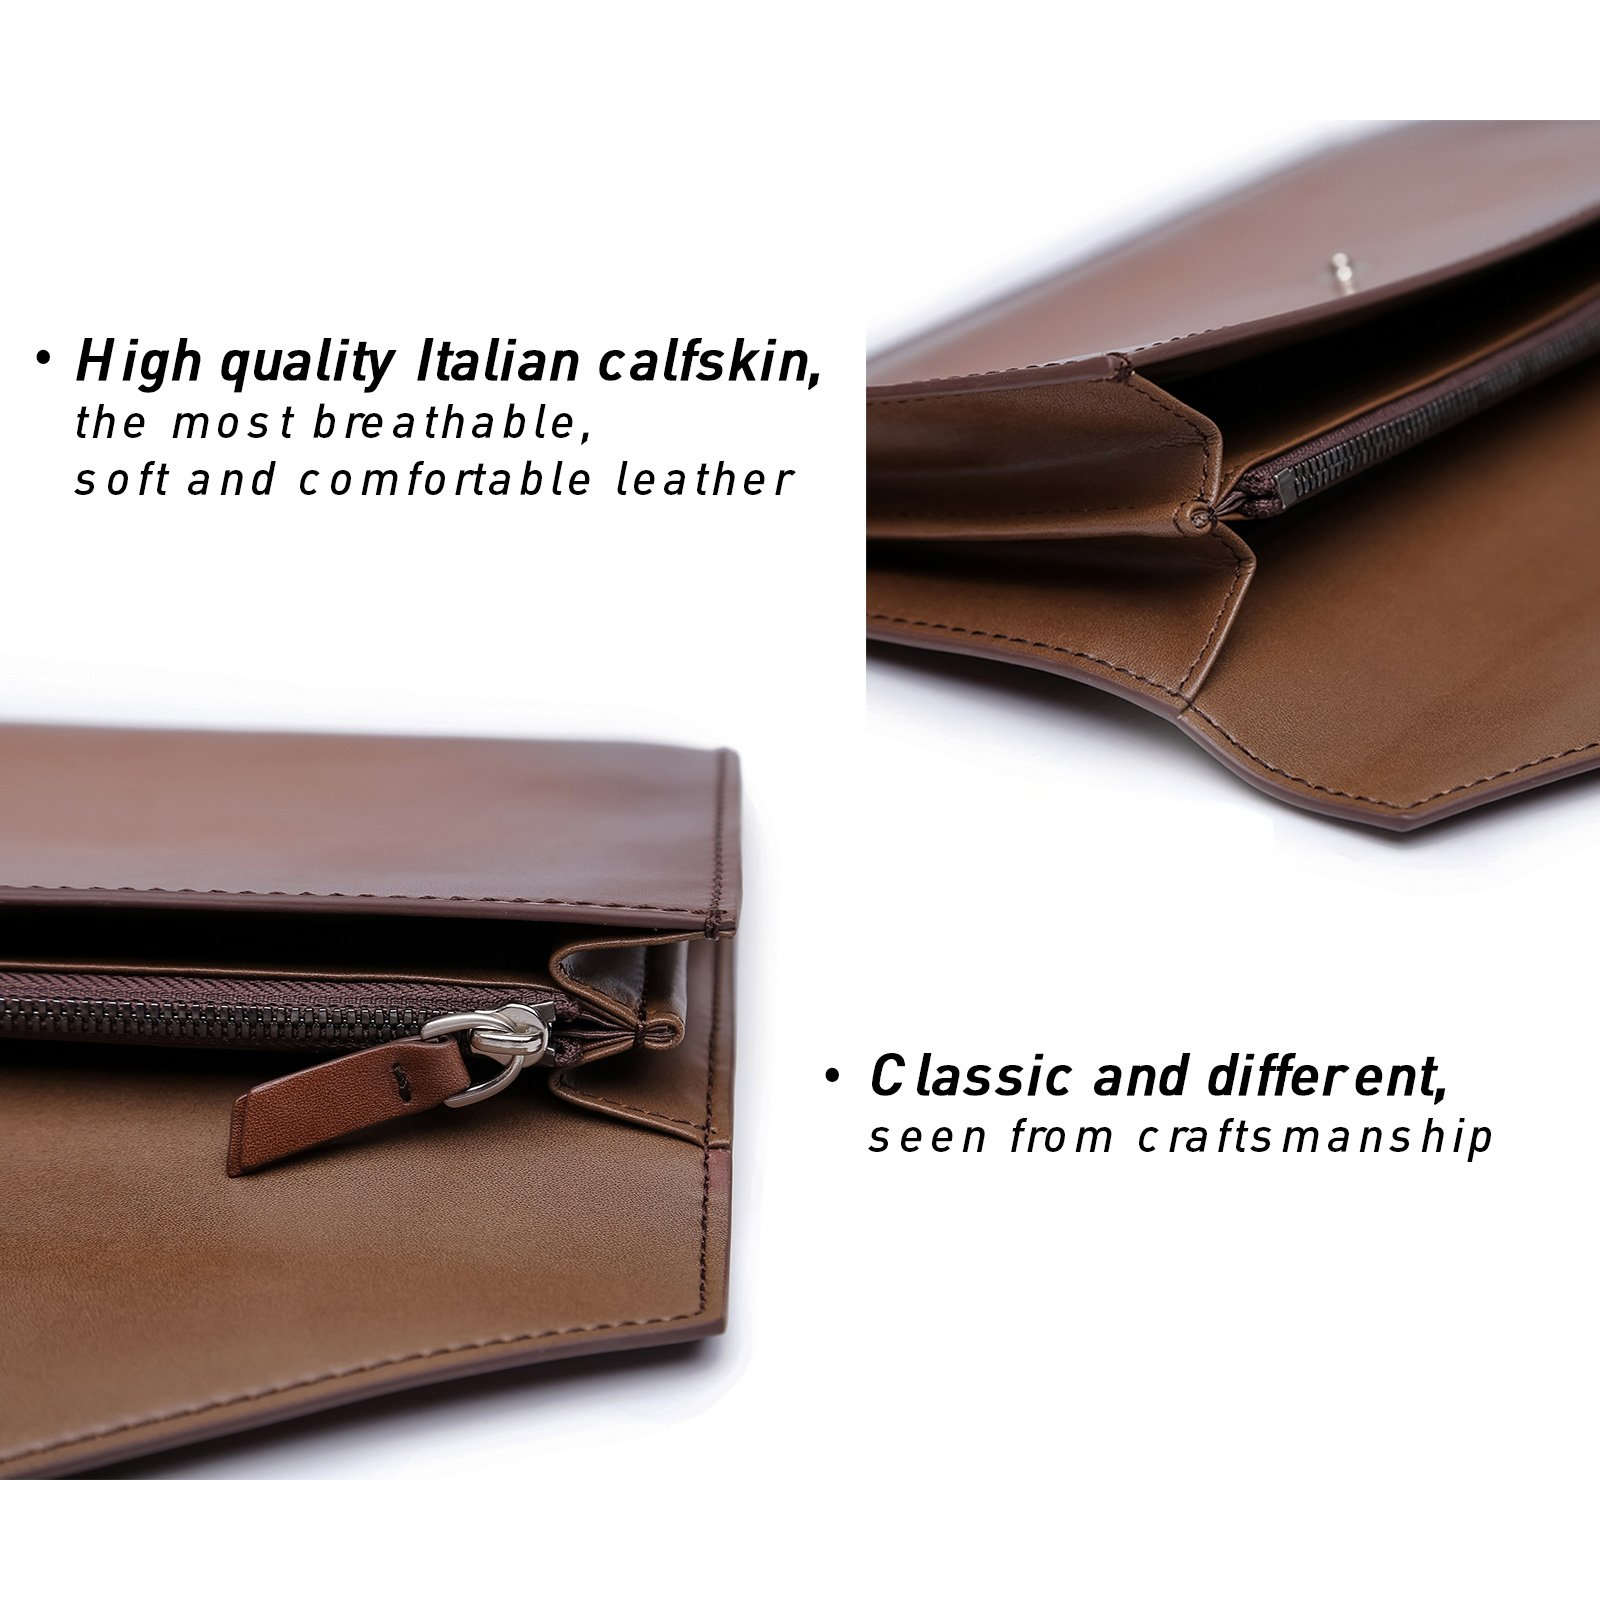 TERSE Clutch Bag for Men Italy Cowhide 100% handmade Messenger bag by TERSE (Image #3)